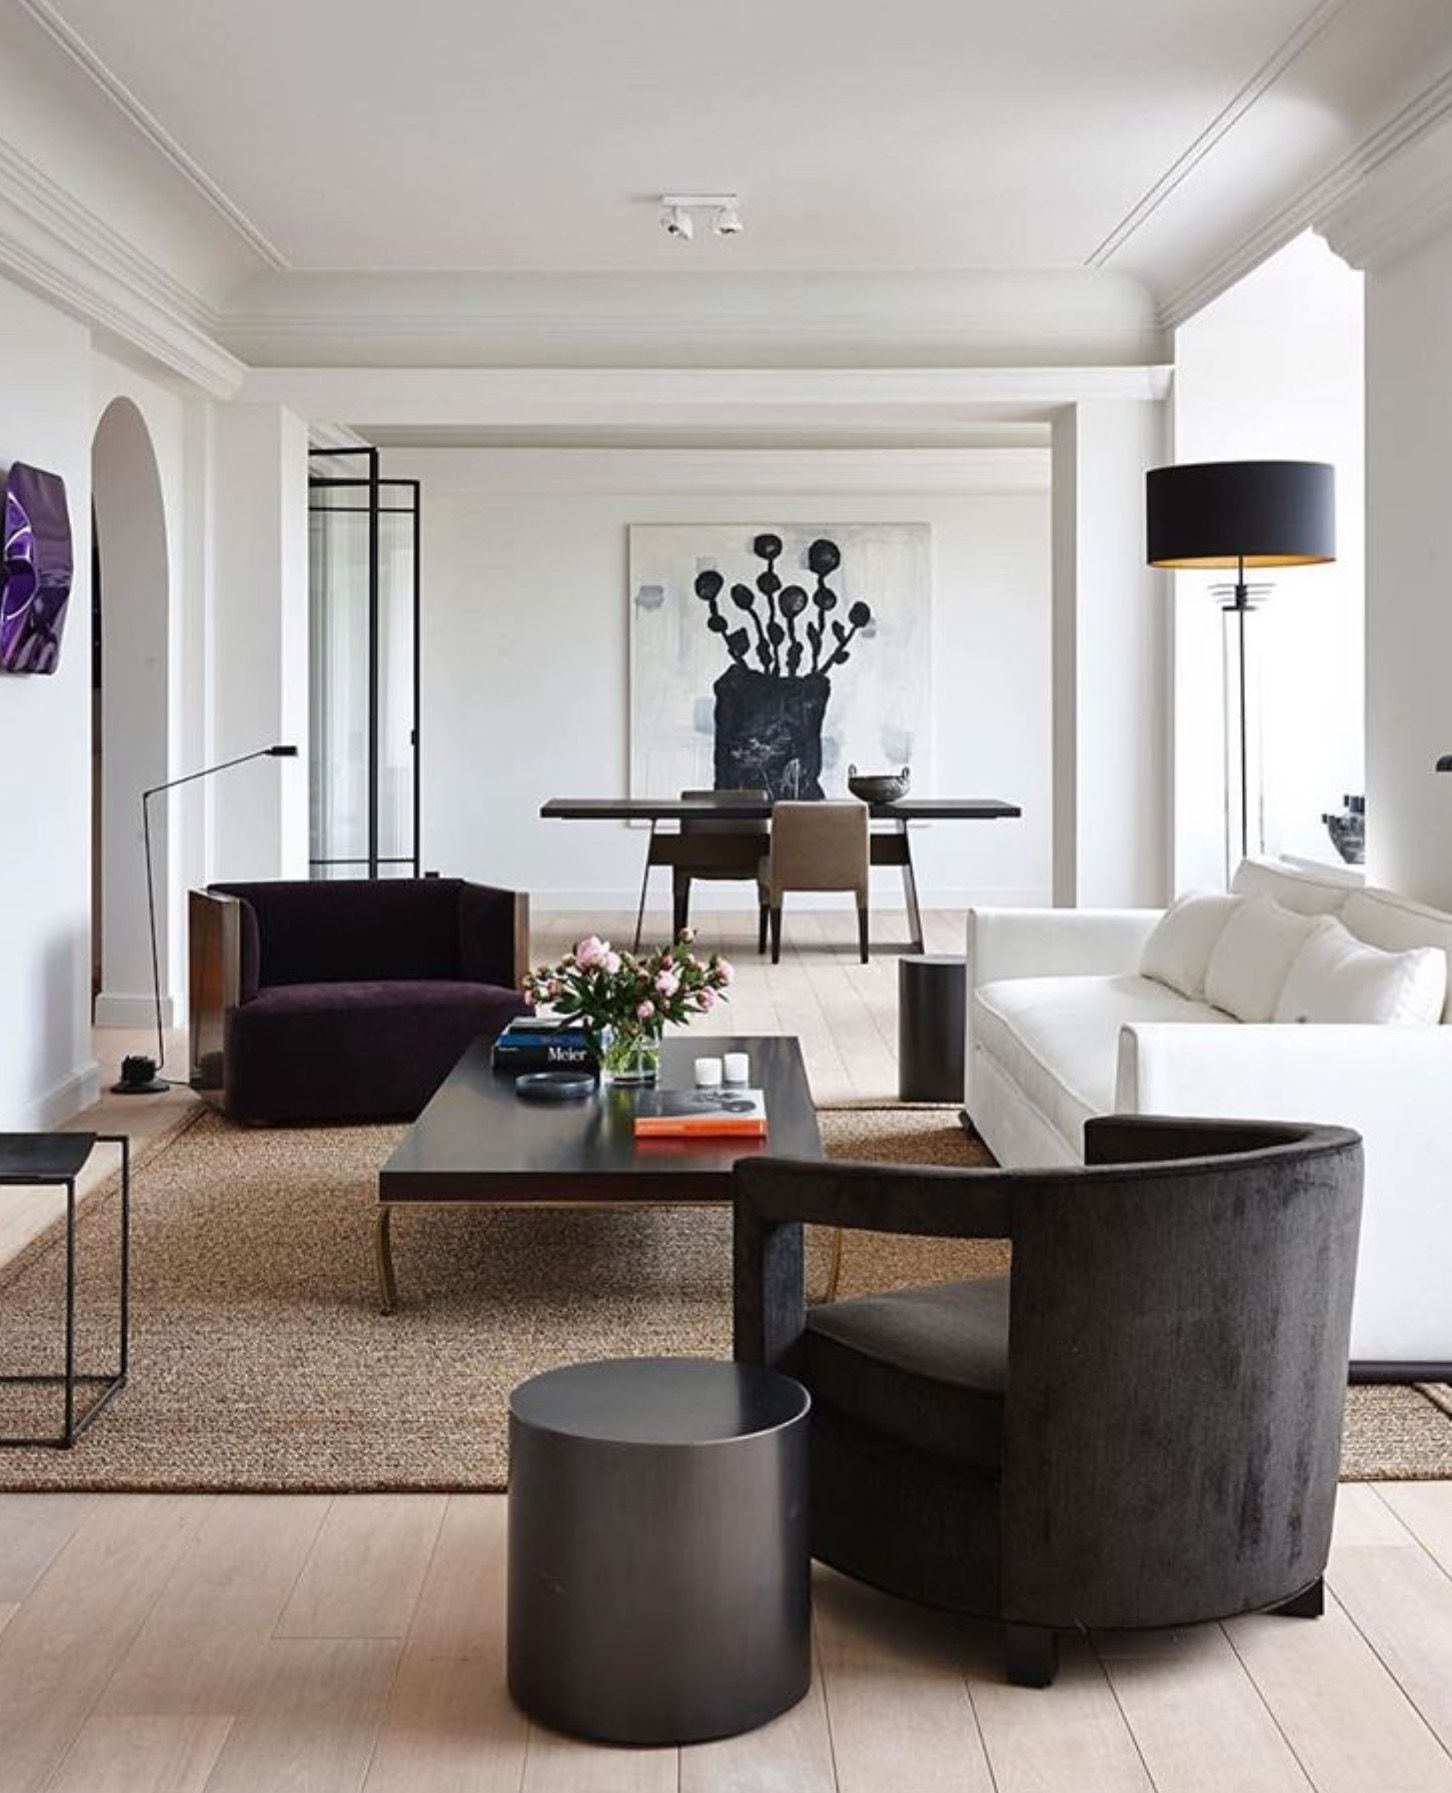 Pin by Ryan Martin on 3 | Residential | Sitting Rooms | Pinterest ...